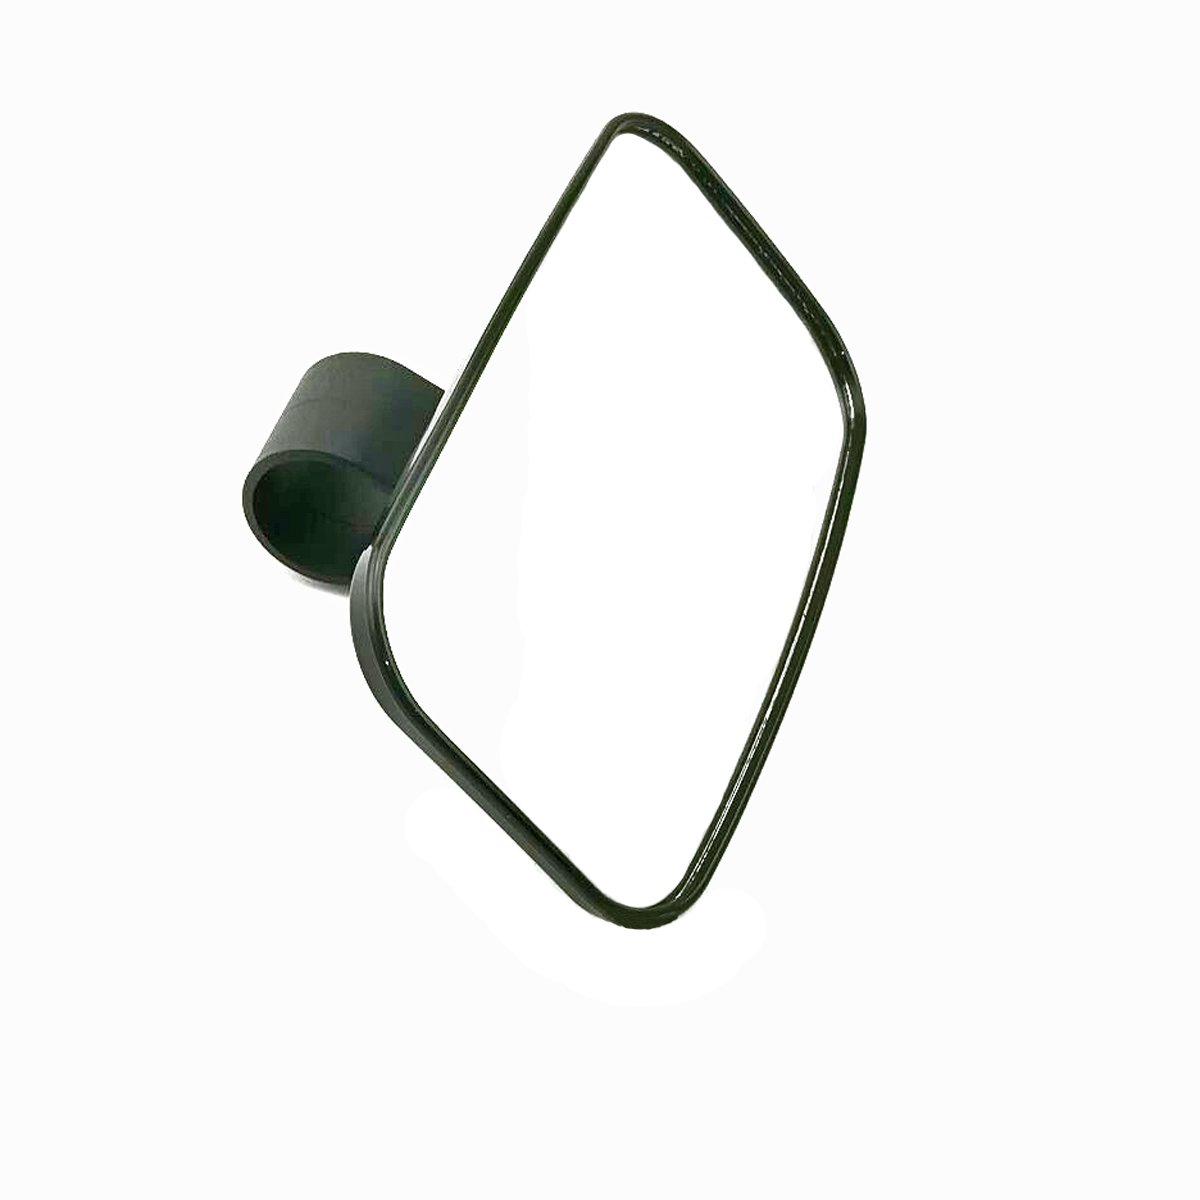 OKSTNO UTV Rear View Mirror for 1.5-2 Roll Cage with Shatter-Proof Tempered Glass Fits to Polaris Ranger,RZR Can Am Commander,Maverick Yamaha Viking,Rhino,Honda,Gator,Mirrors